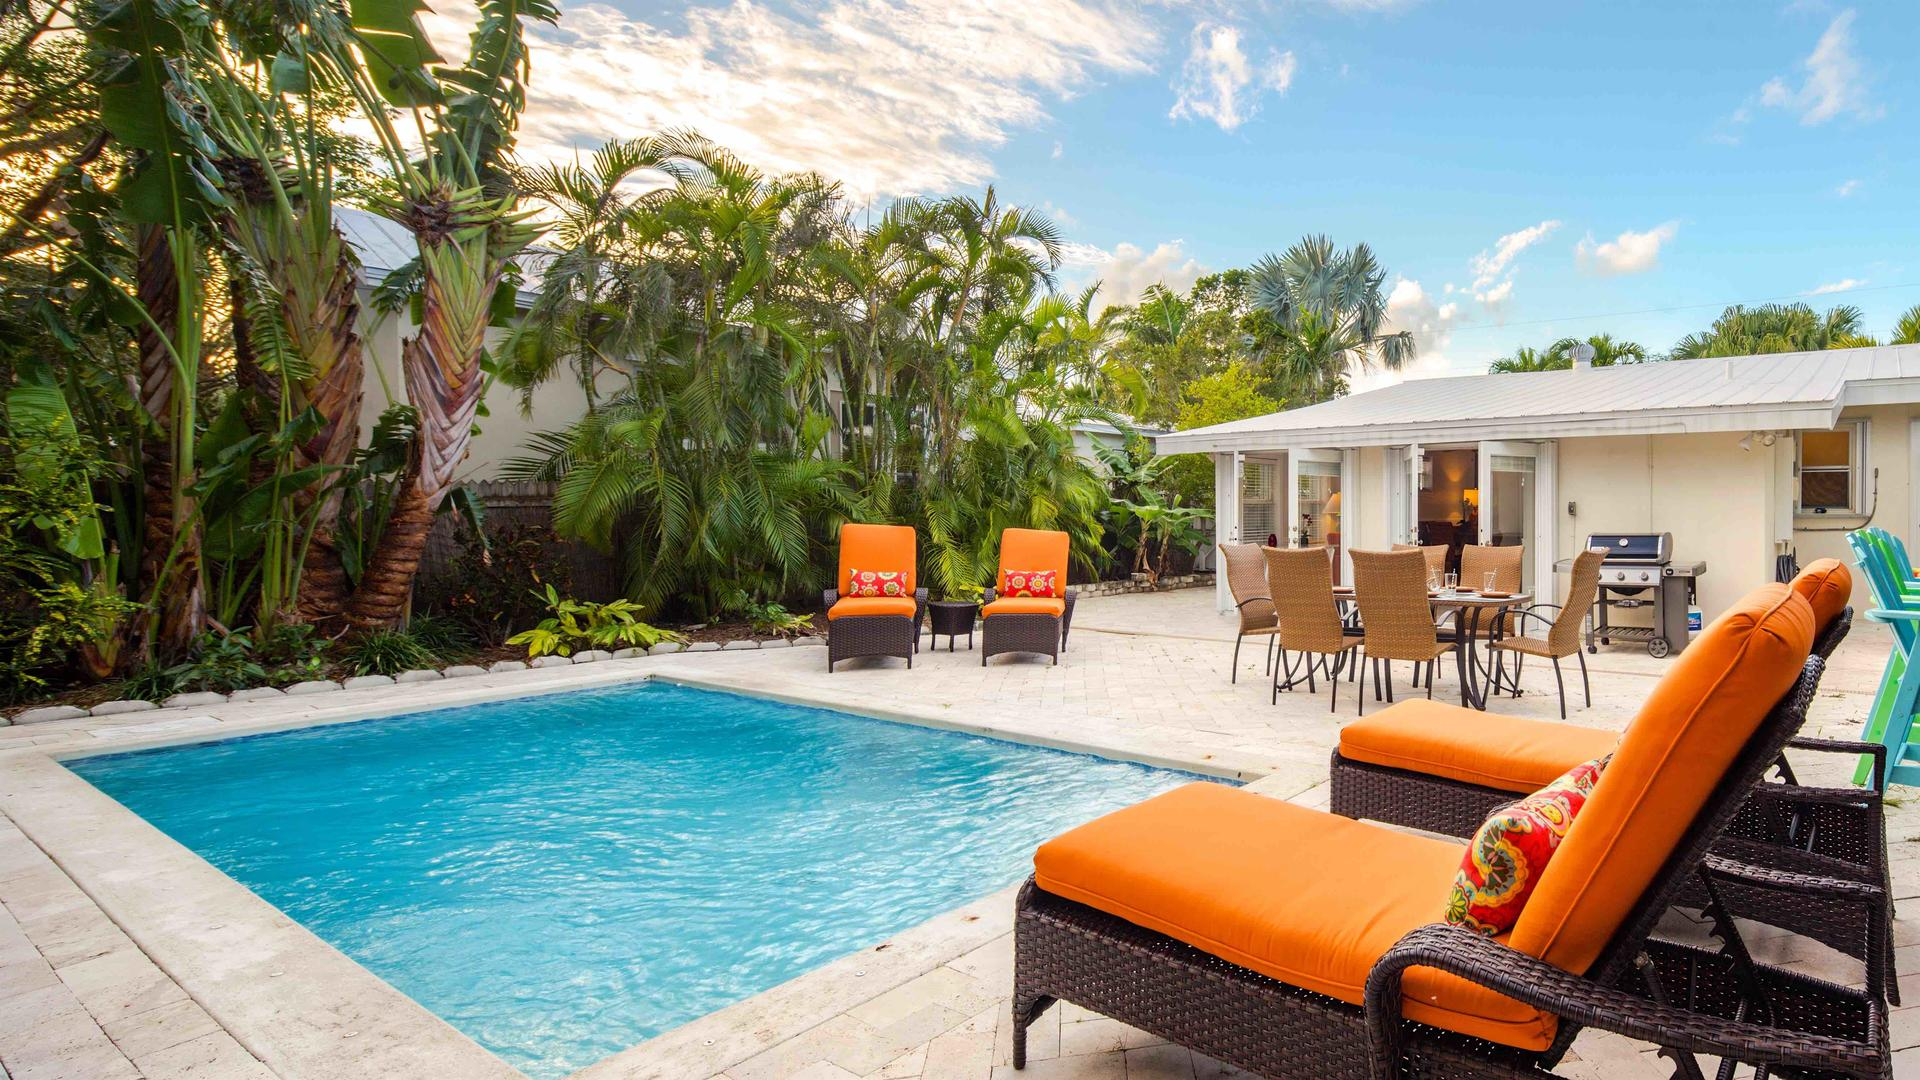 The heated pool is surrounded by chaise lounges...